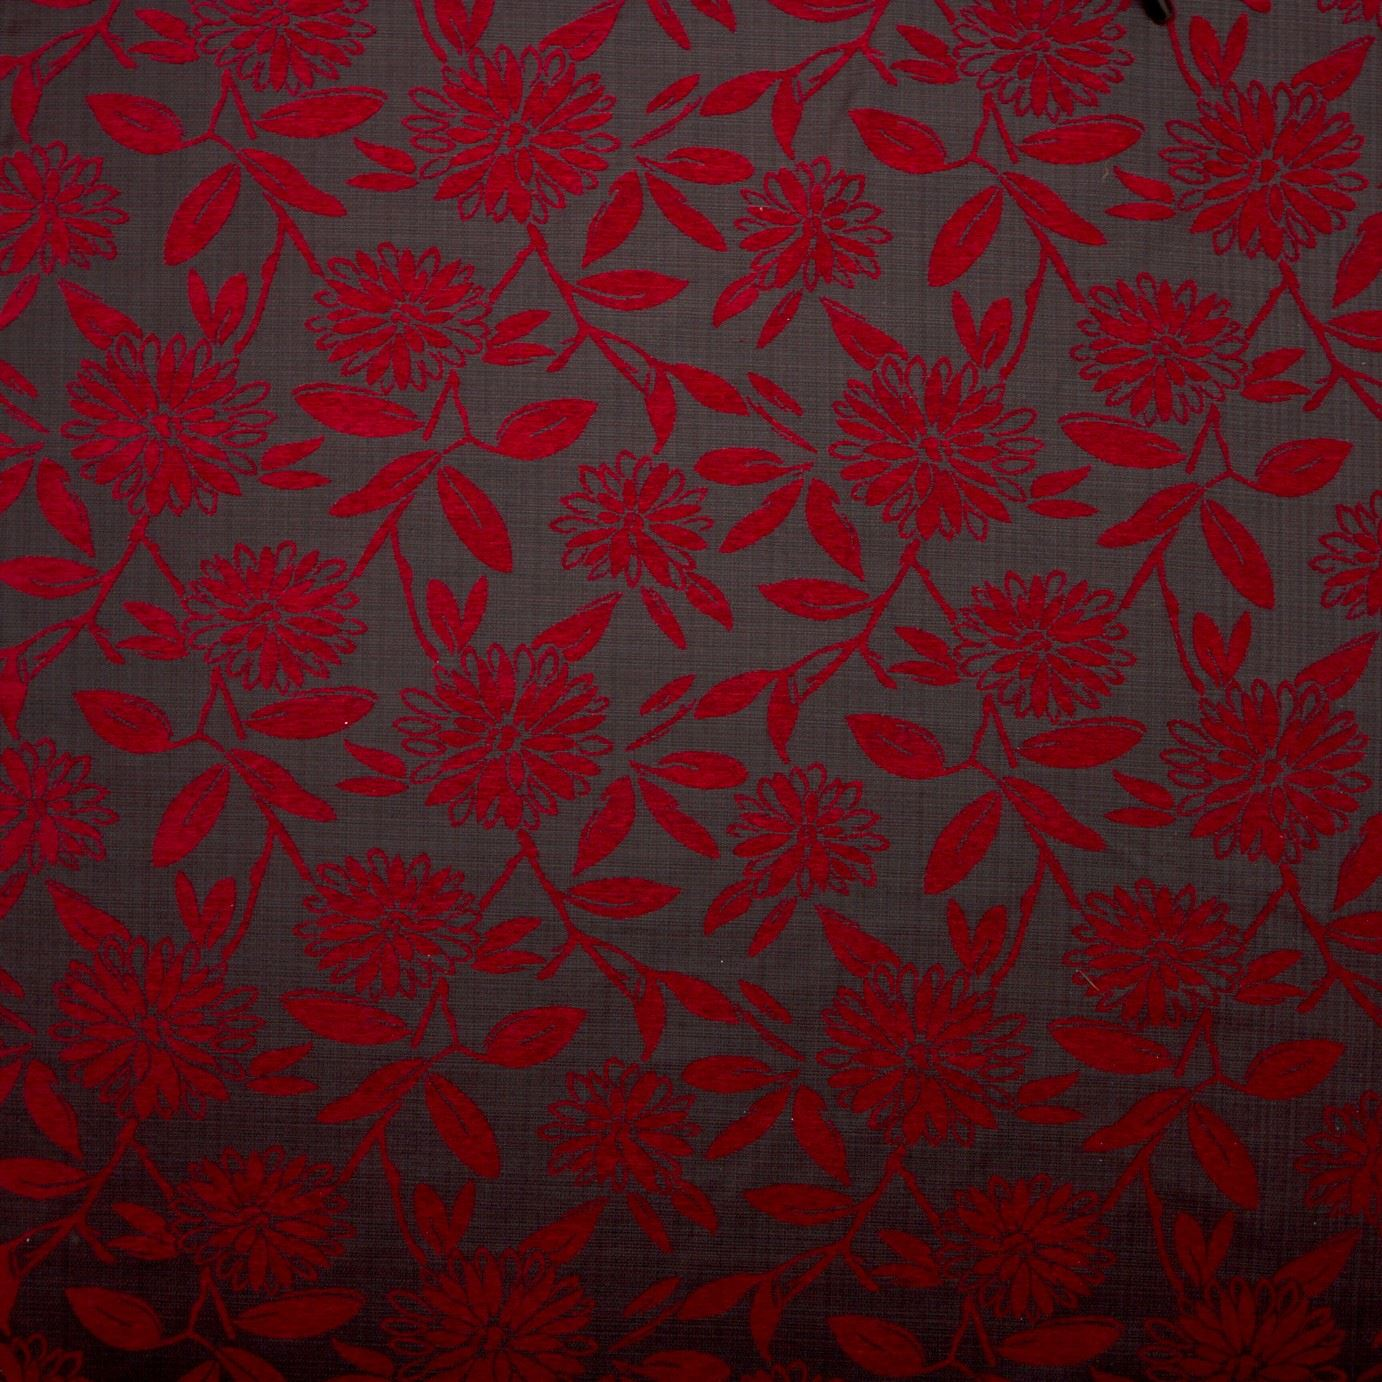 Sofa Fabric Samples Details About Luxury Soft Floral Swirl Chenille Flower Upholstery Sofa Curtain Fabric Material